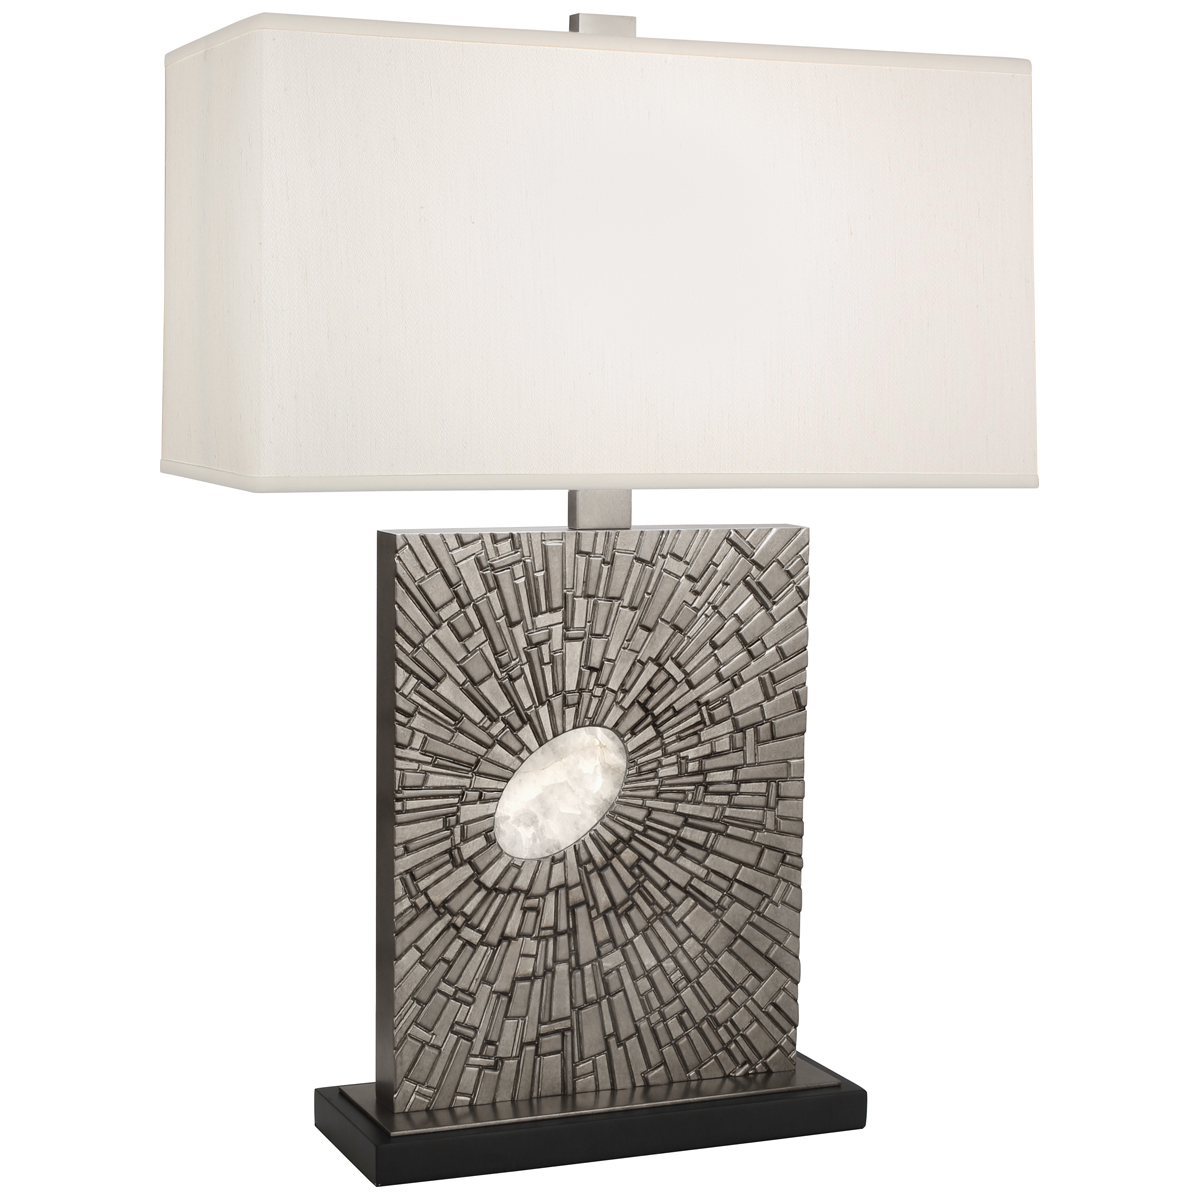 Goliath Table Lamp Style #S415